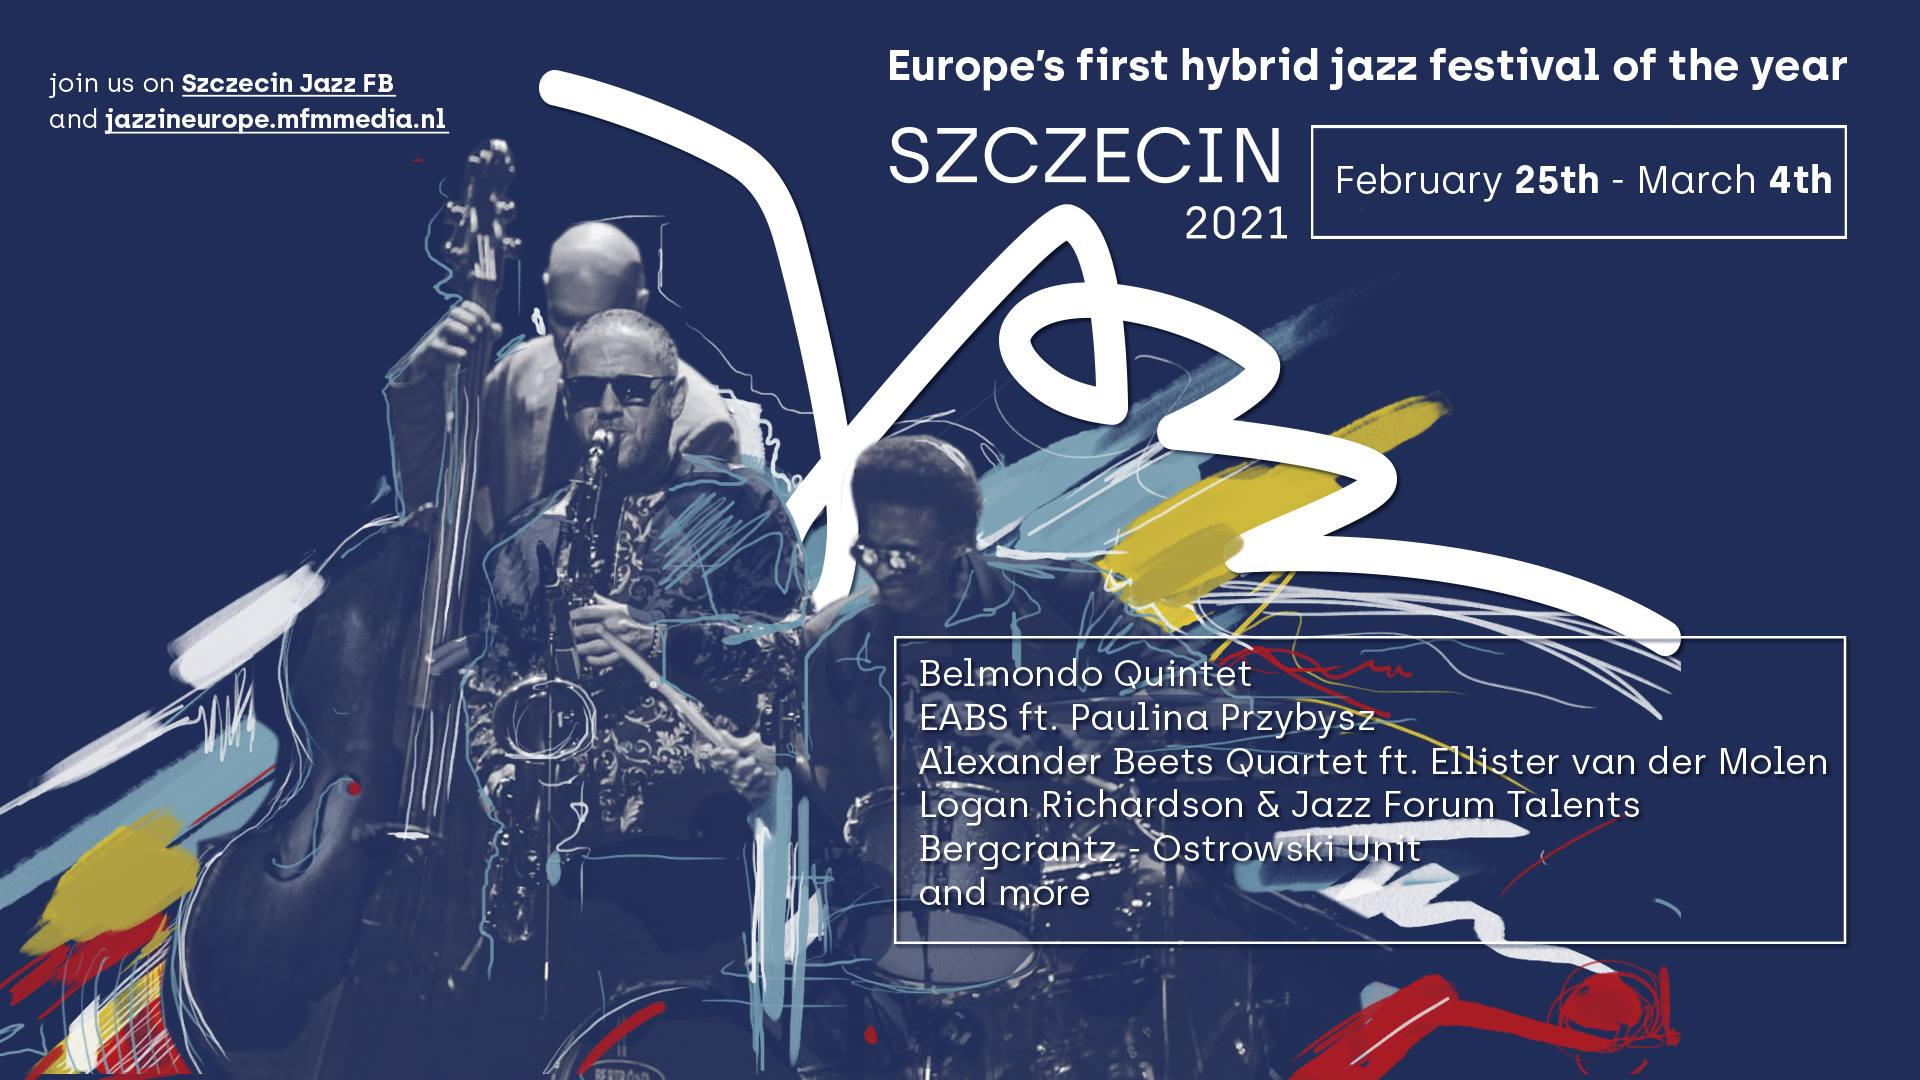 SZCZECIN 2021: Europes First Hybrid Jazz Festival of the Year Runs February 25-March 4 in Partnership with Jazz in Europe